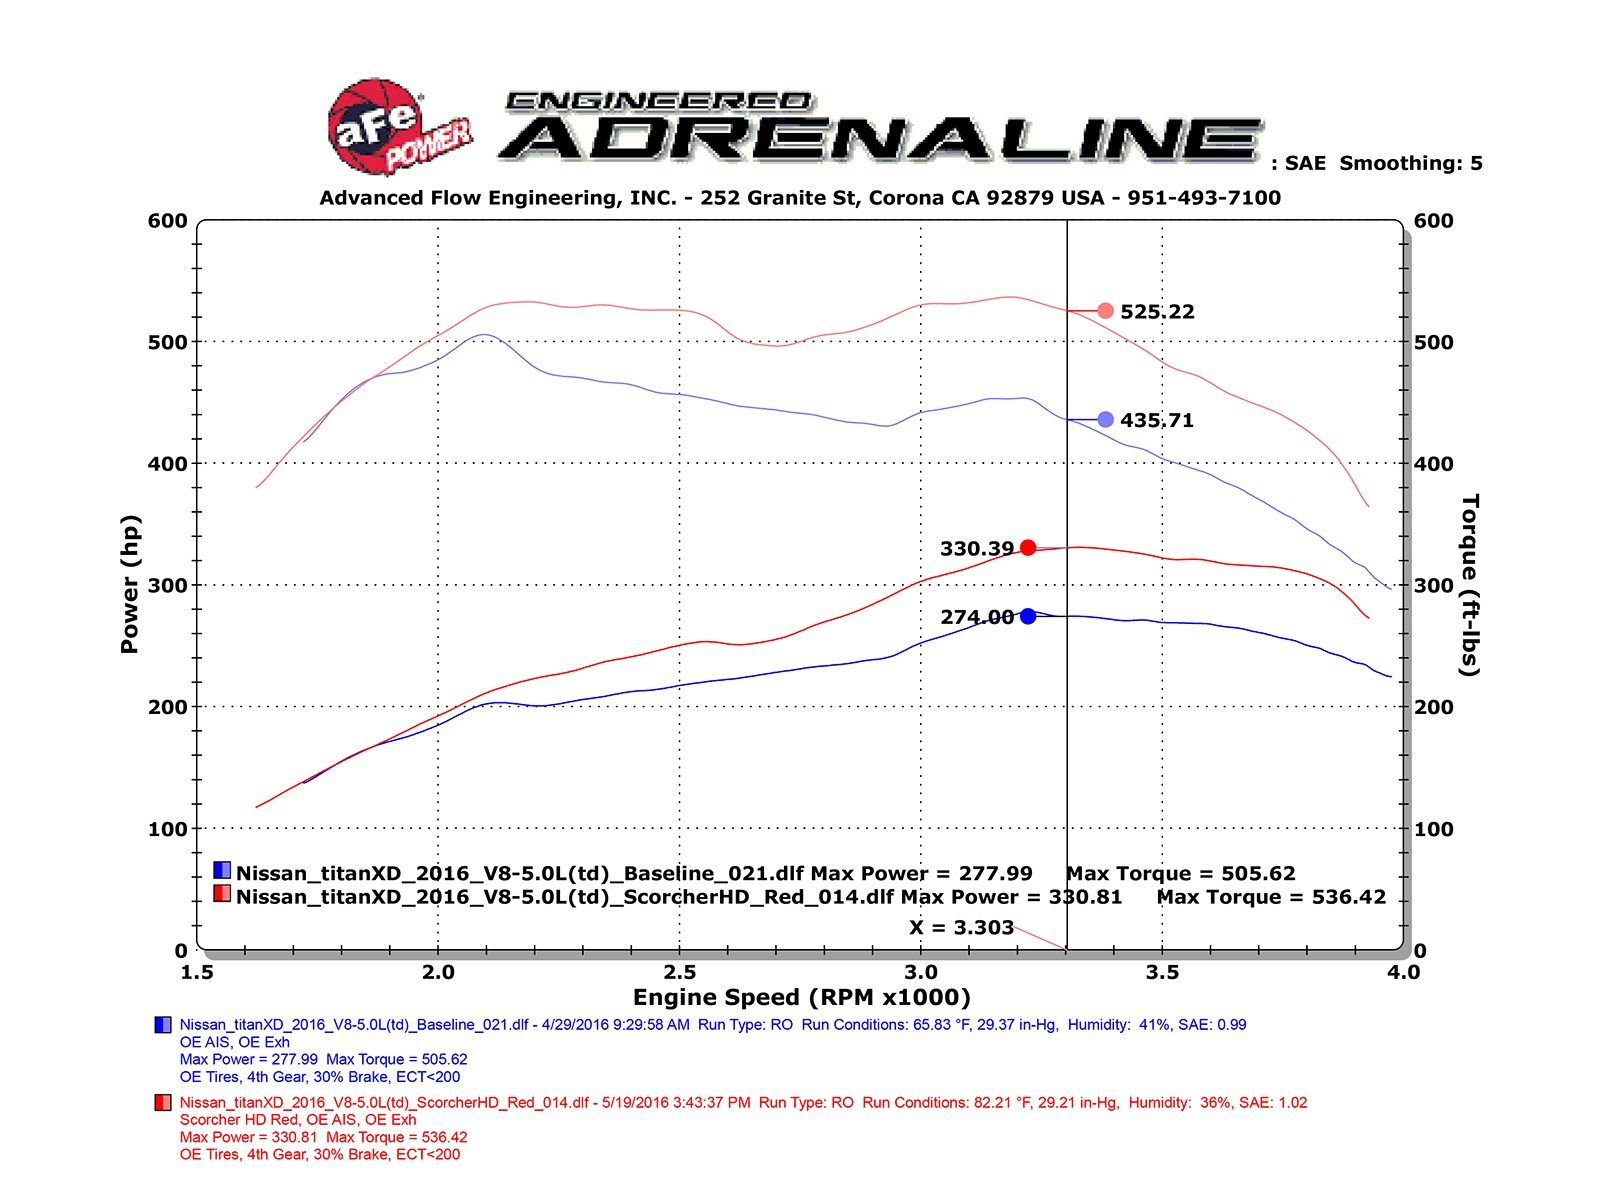 Scorcher Hd Power Module Afe Duramax Engine New Wiring Harness Adds Up To 56 Hp Horsepower 90 Lbs X Ft Torque Max Gains